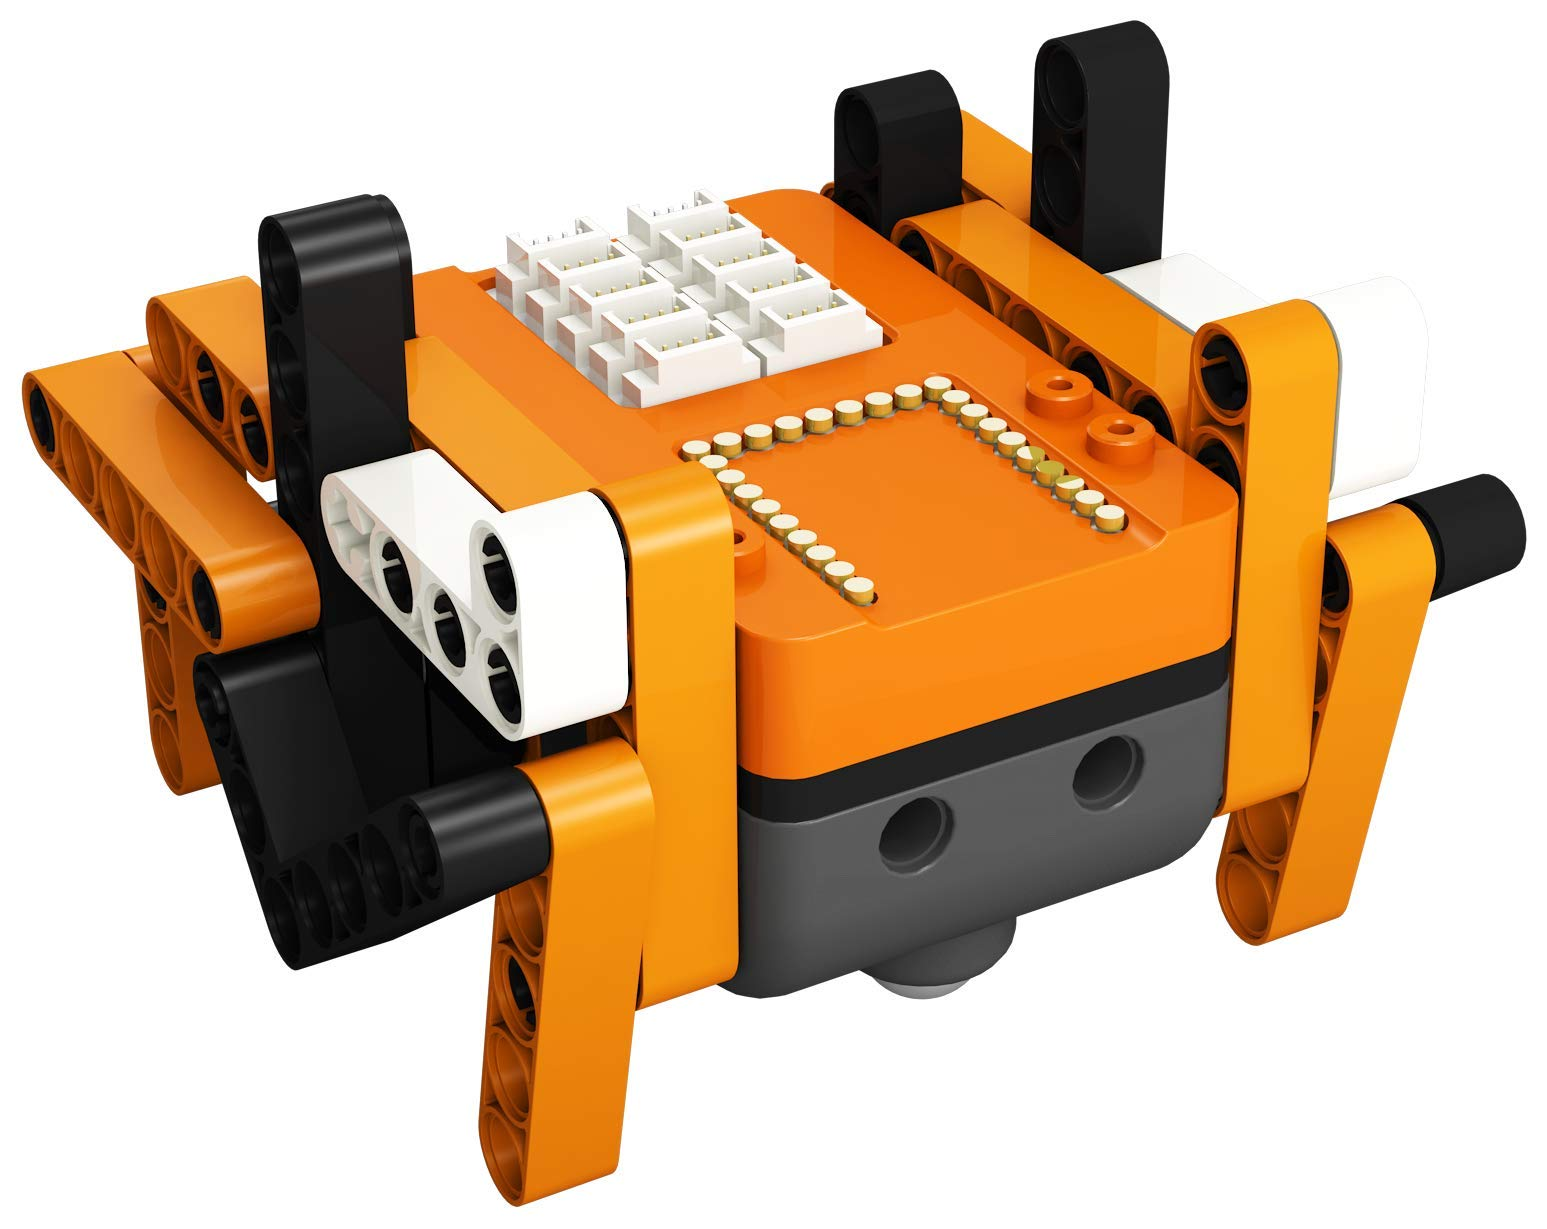 Microduino Itty Bitty Buggy DIY 5-in-1 Programmable Robot STEM Education Toy for Boys and Girls Age 8+ Learn Coding, Robotics and Electronics by Microduino (Image #8)